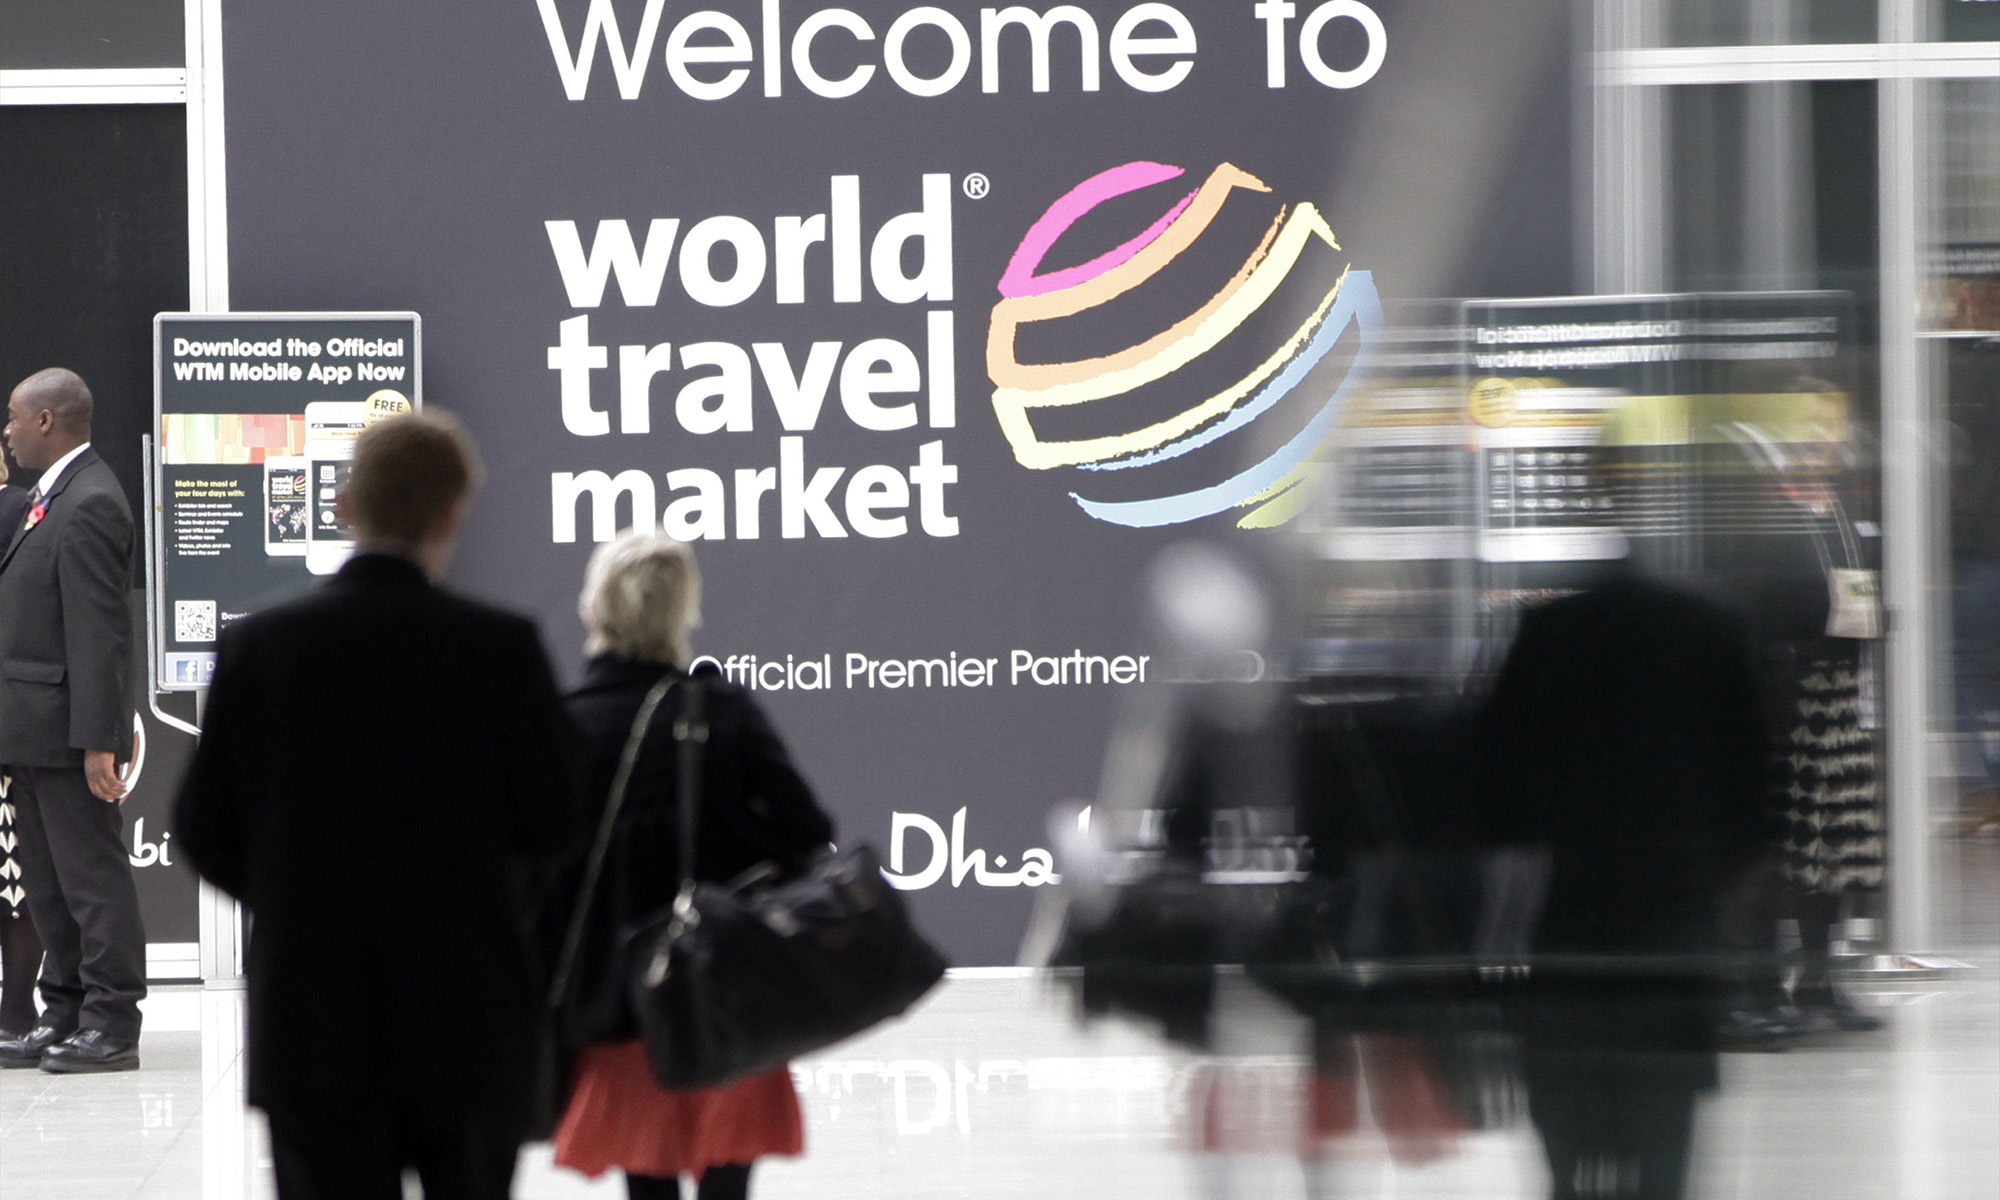 Highlights of the World Travel Market London 2017